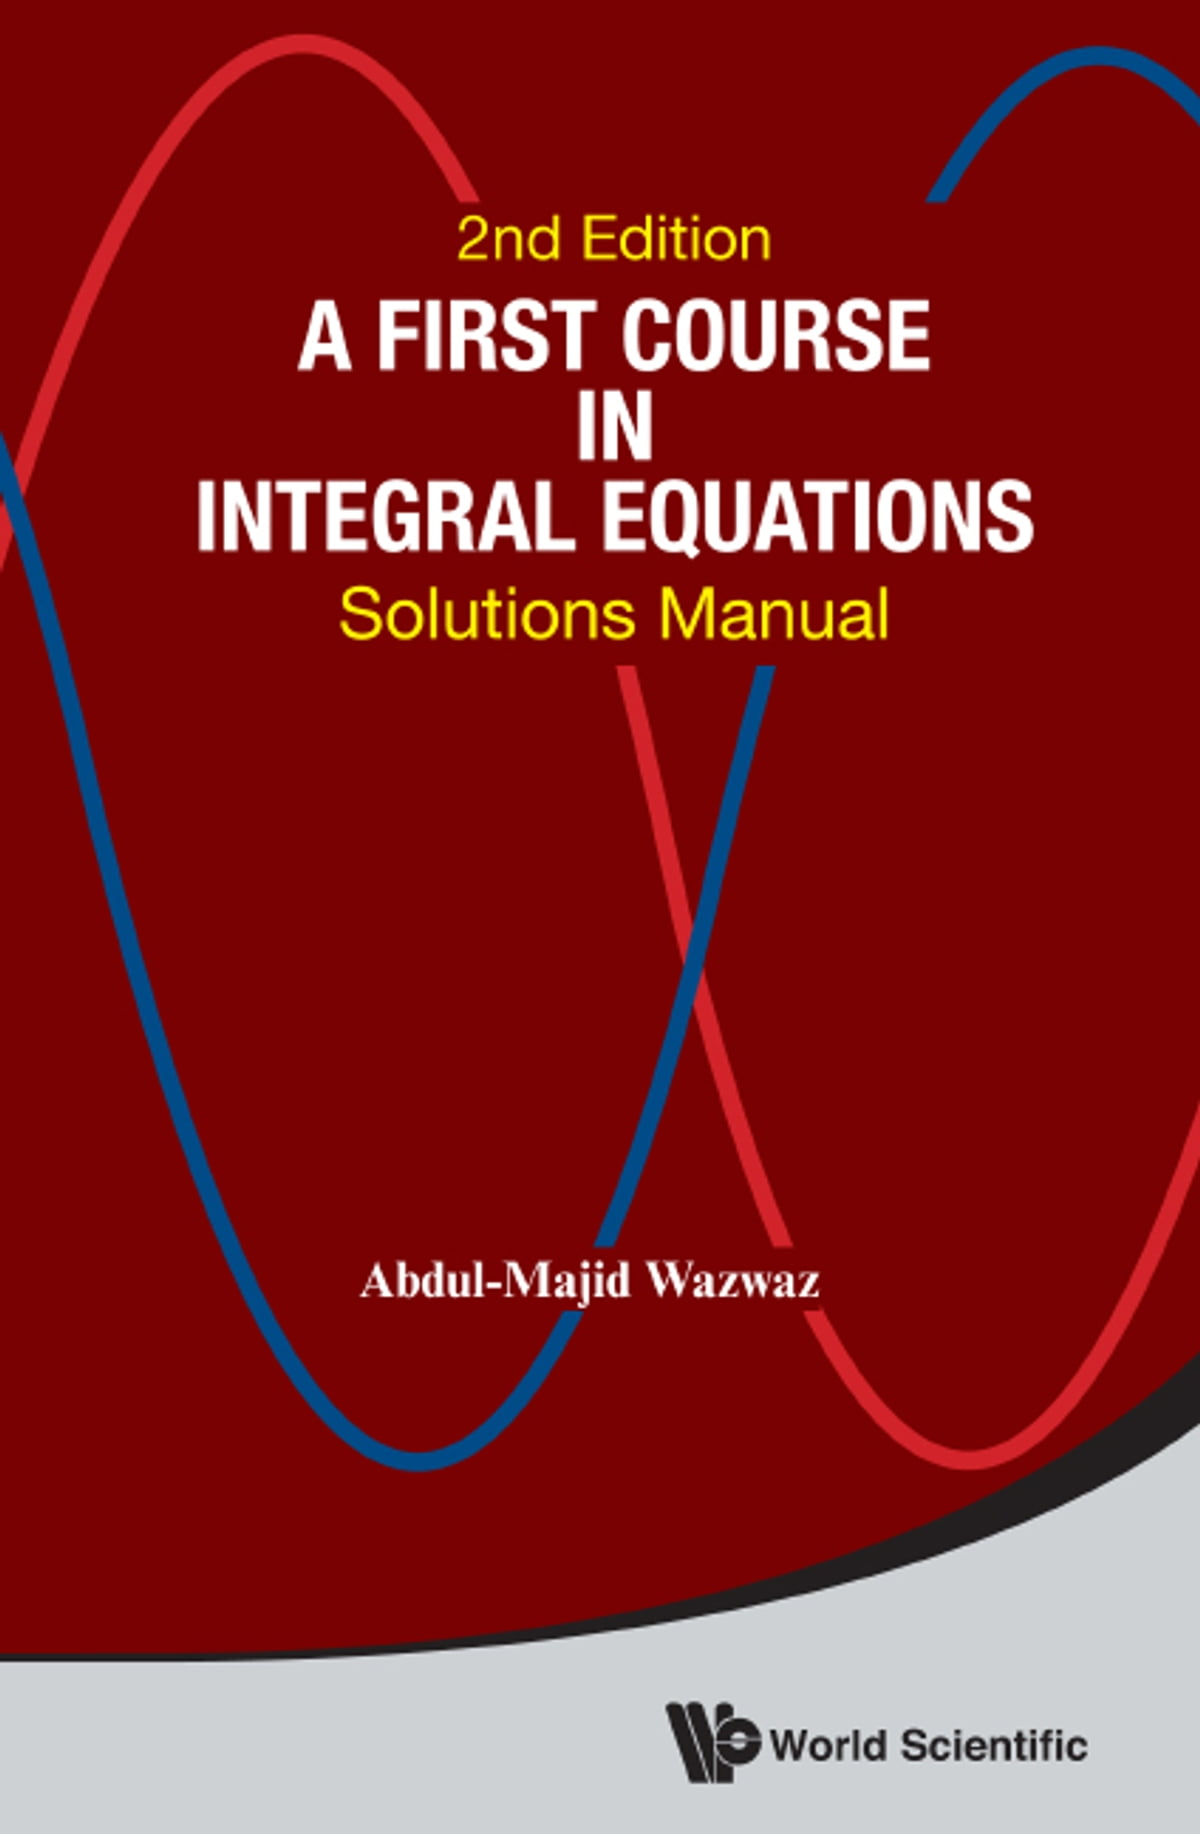 A First Course in Integral Equations eBook by Abdul-Majid Wazwaz ...